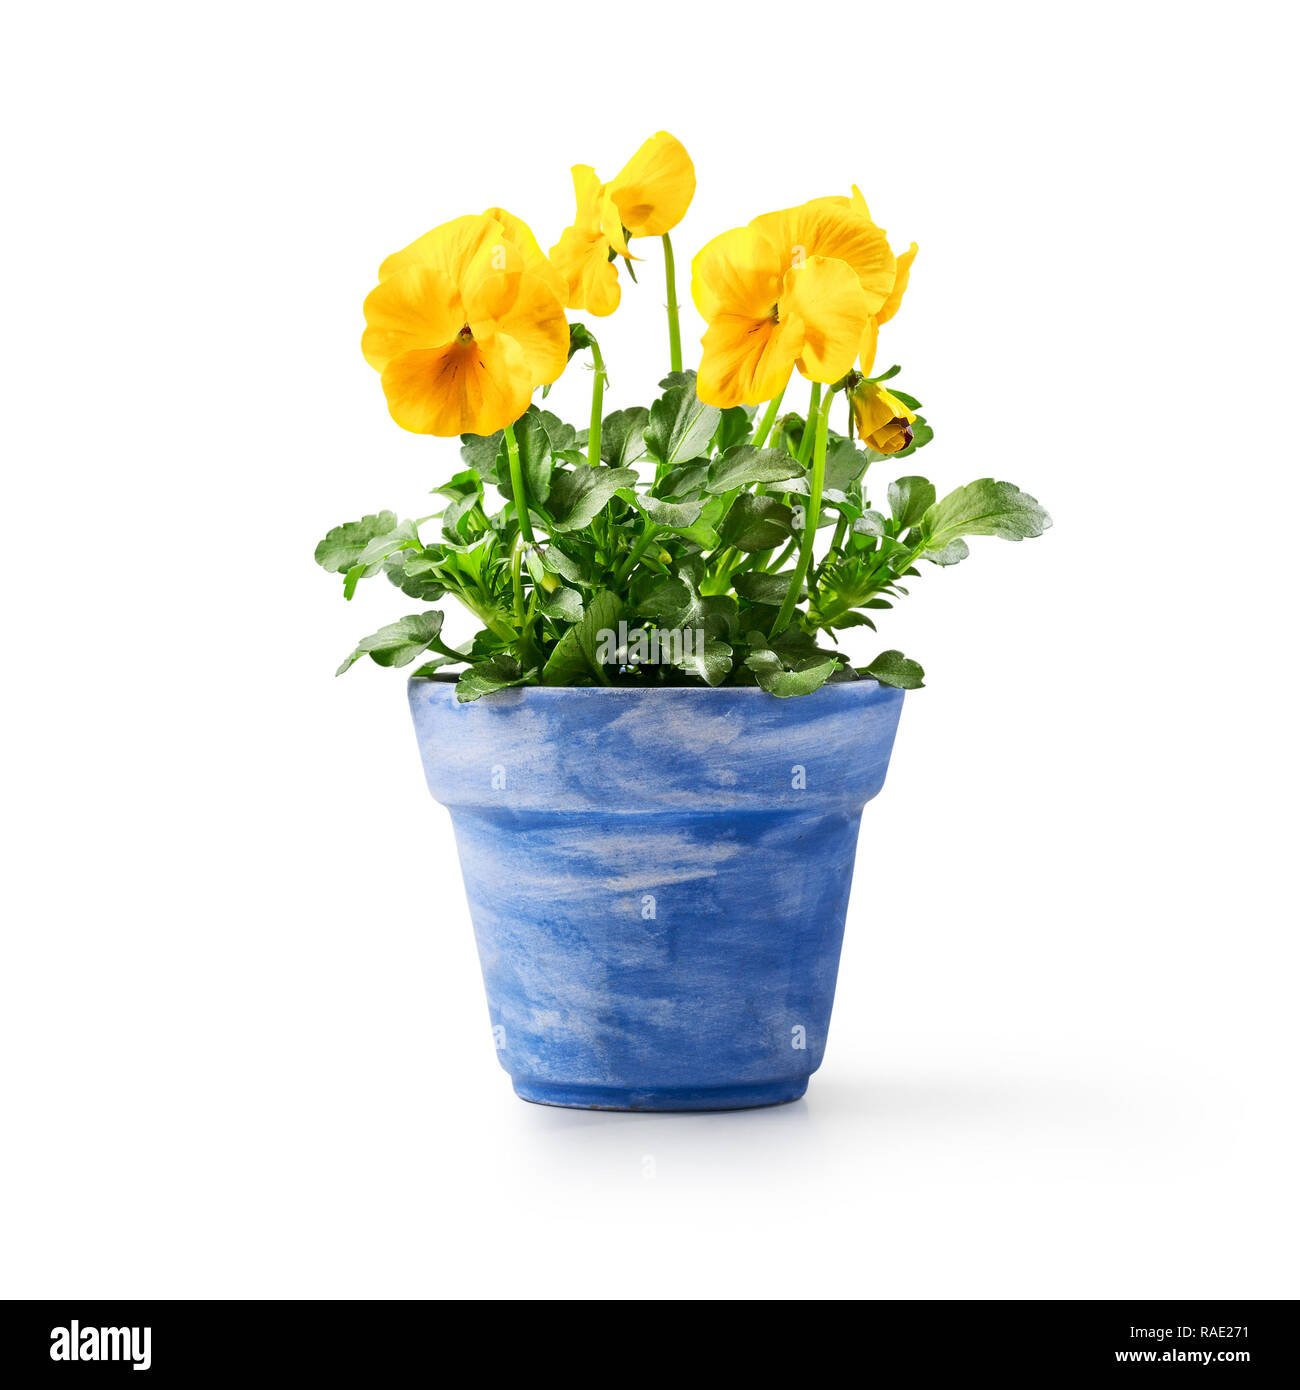 Pansy flowers in flowerpot isolated on white background. Spring garden  yellow viola tricolor plant as design element - Stock Image